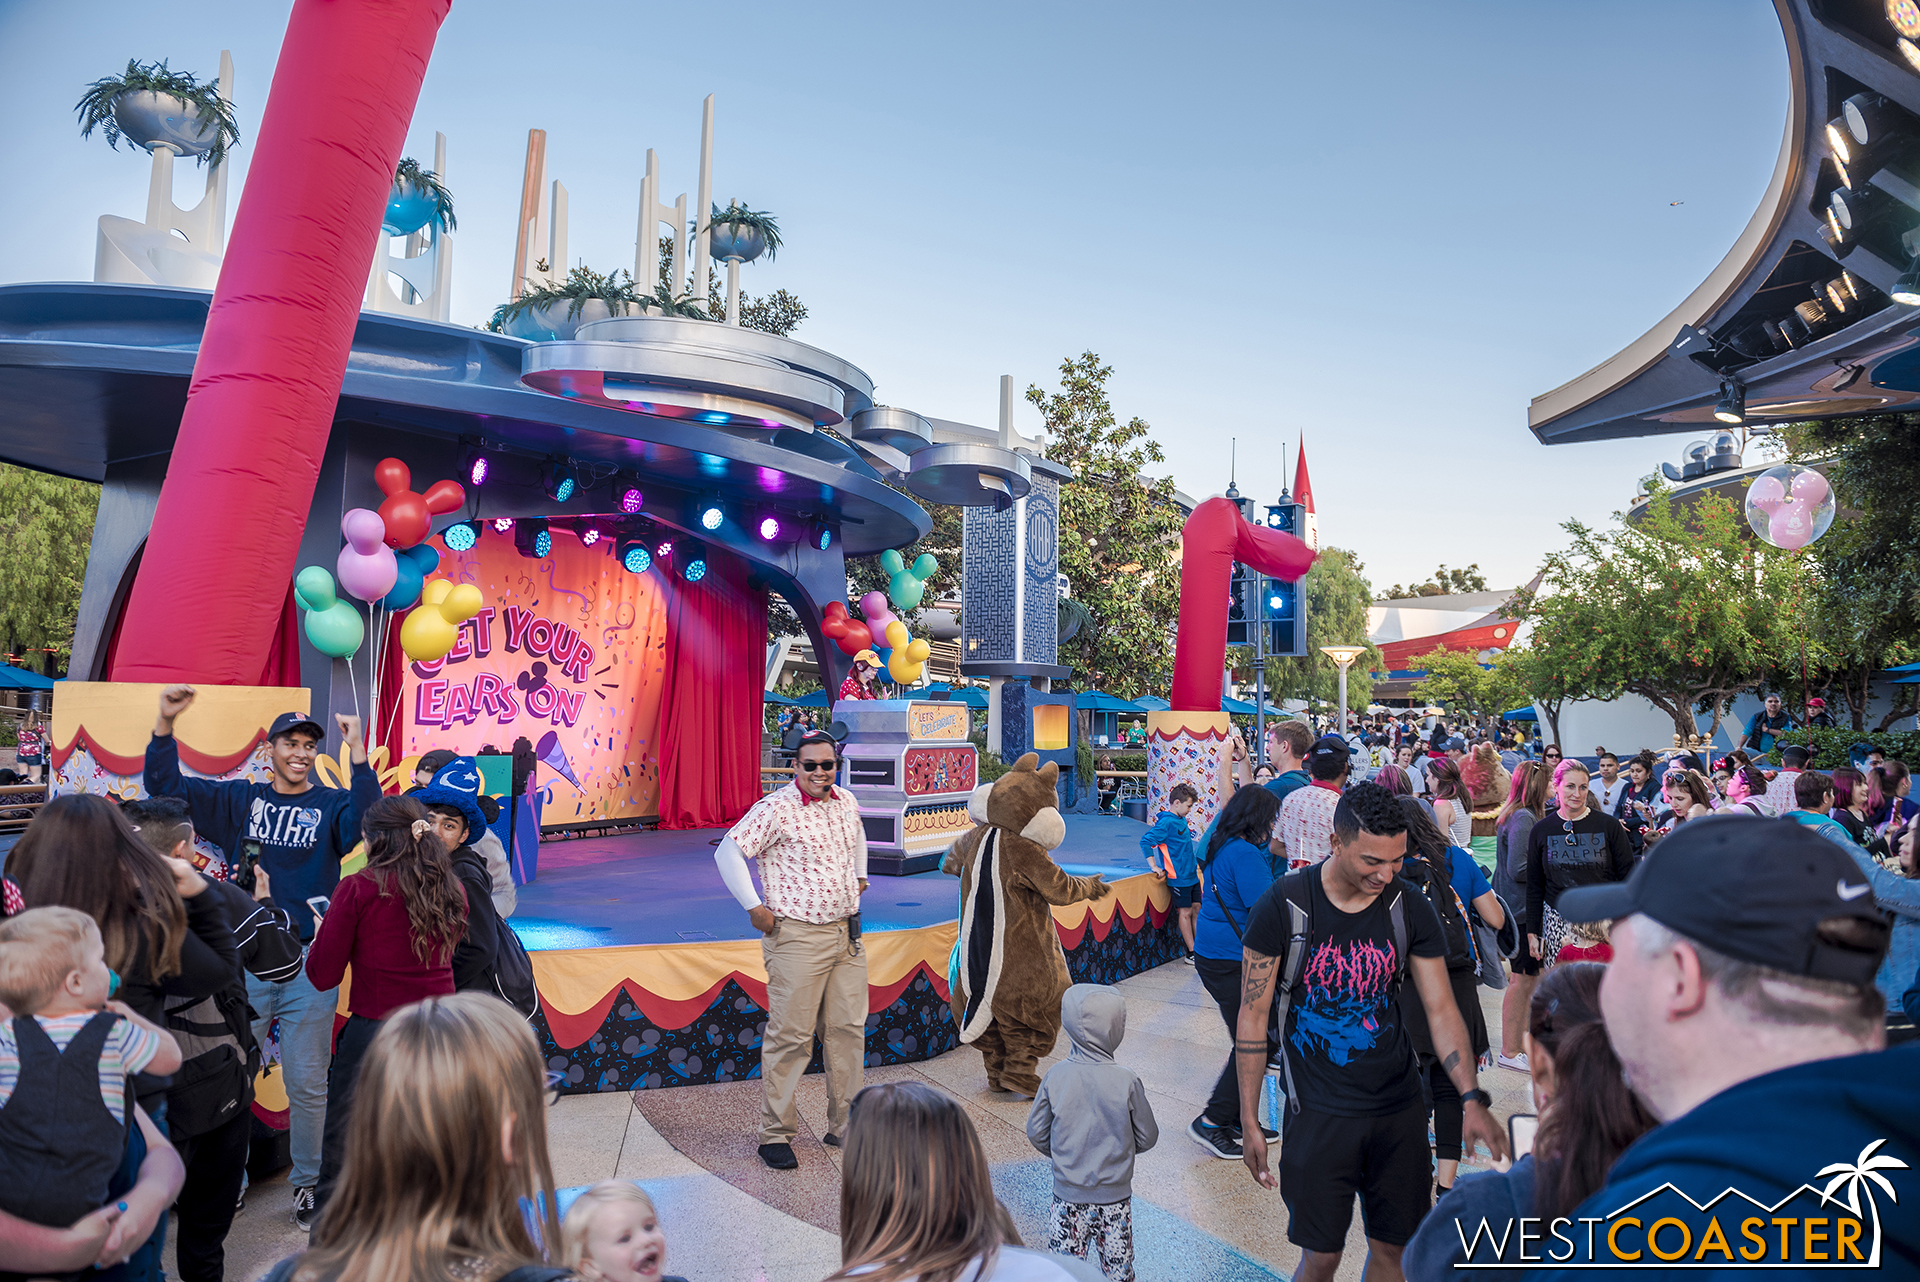 Dance party at Tomorrowland Terrace.